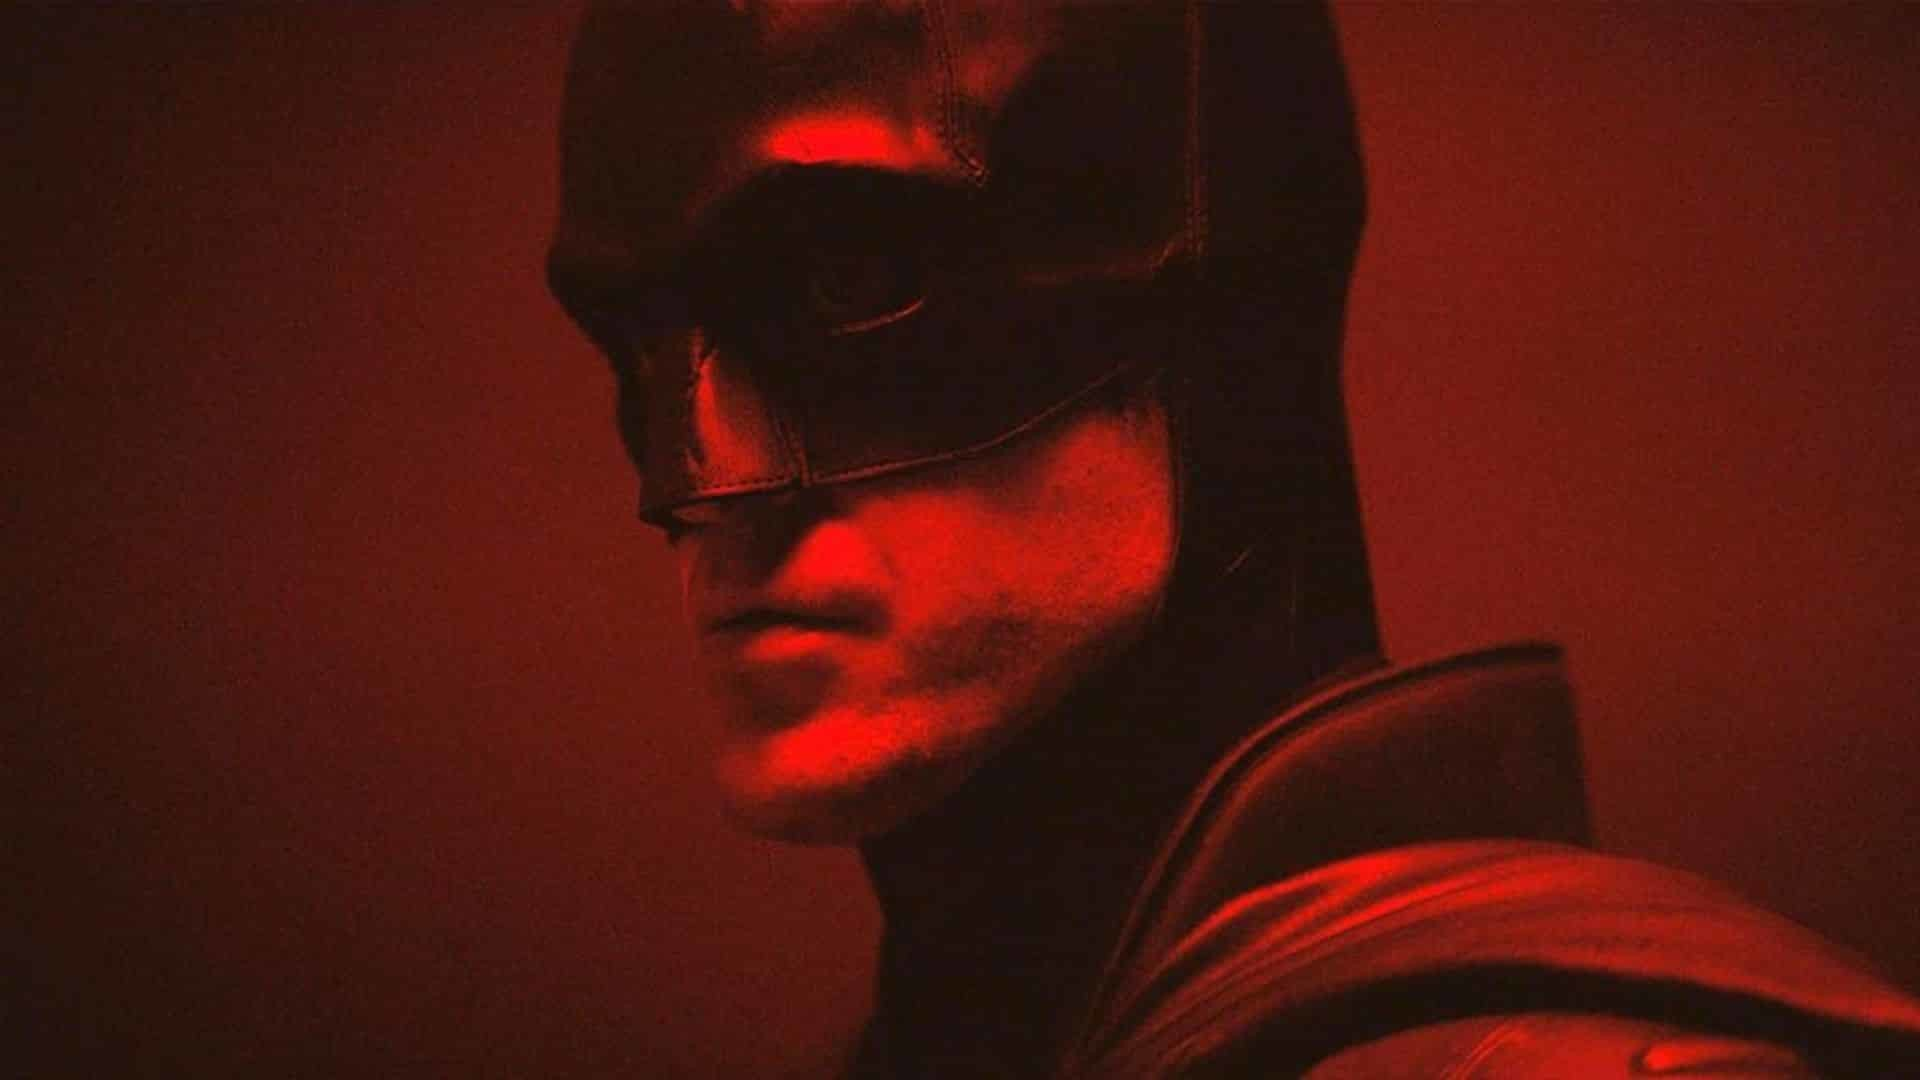 The Batman: nuove foto dal set della Batsuit indossata da Robert Pattinson